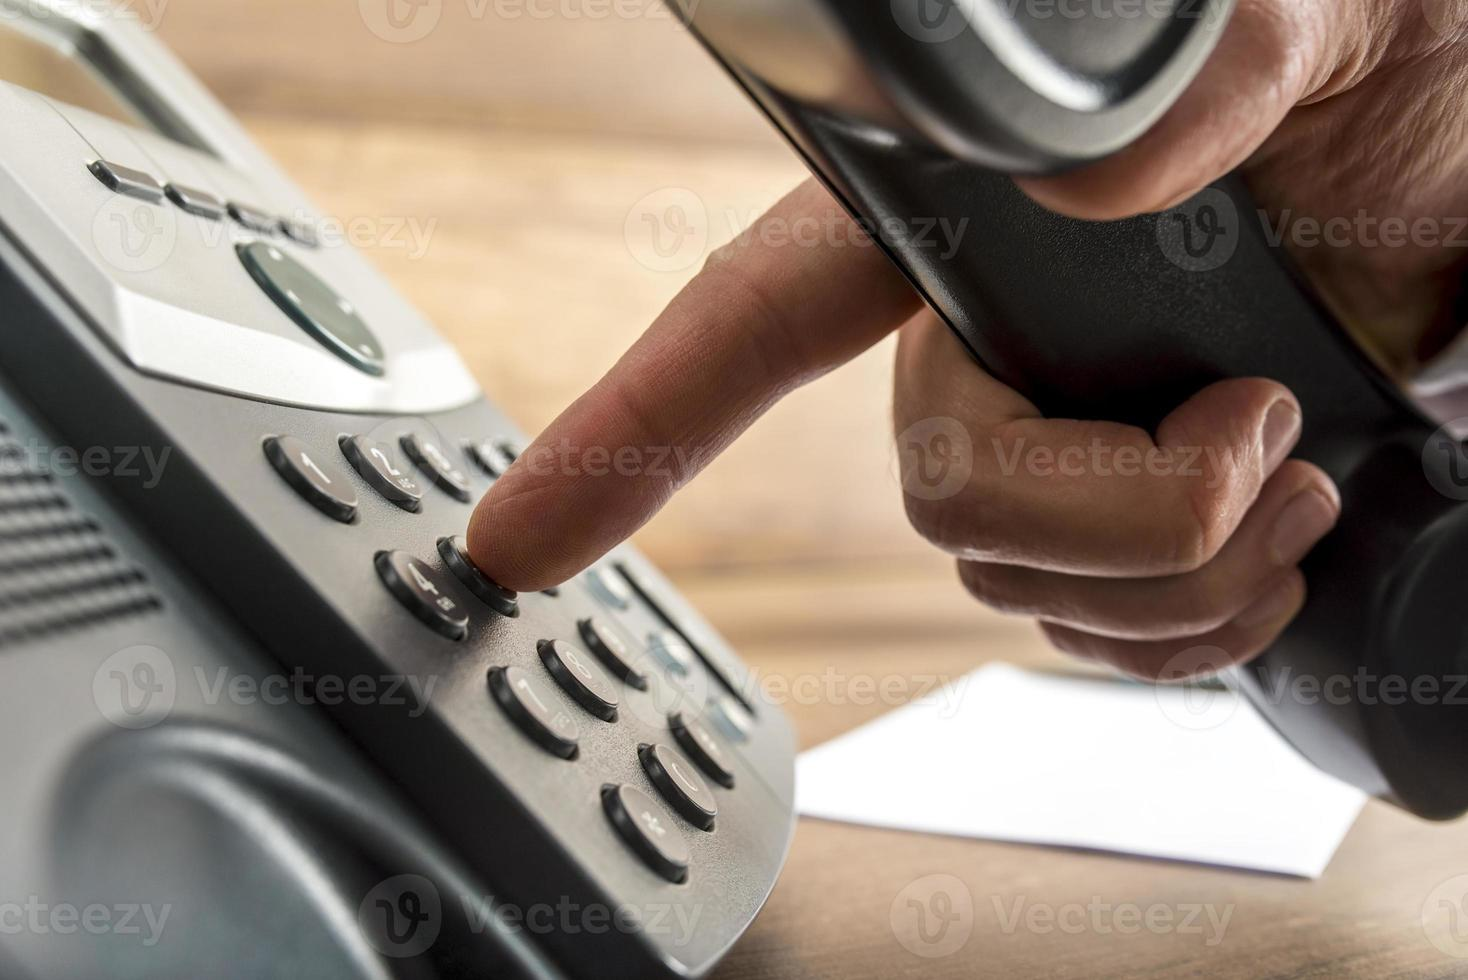 Male hand dialing a telephone number photo